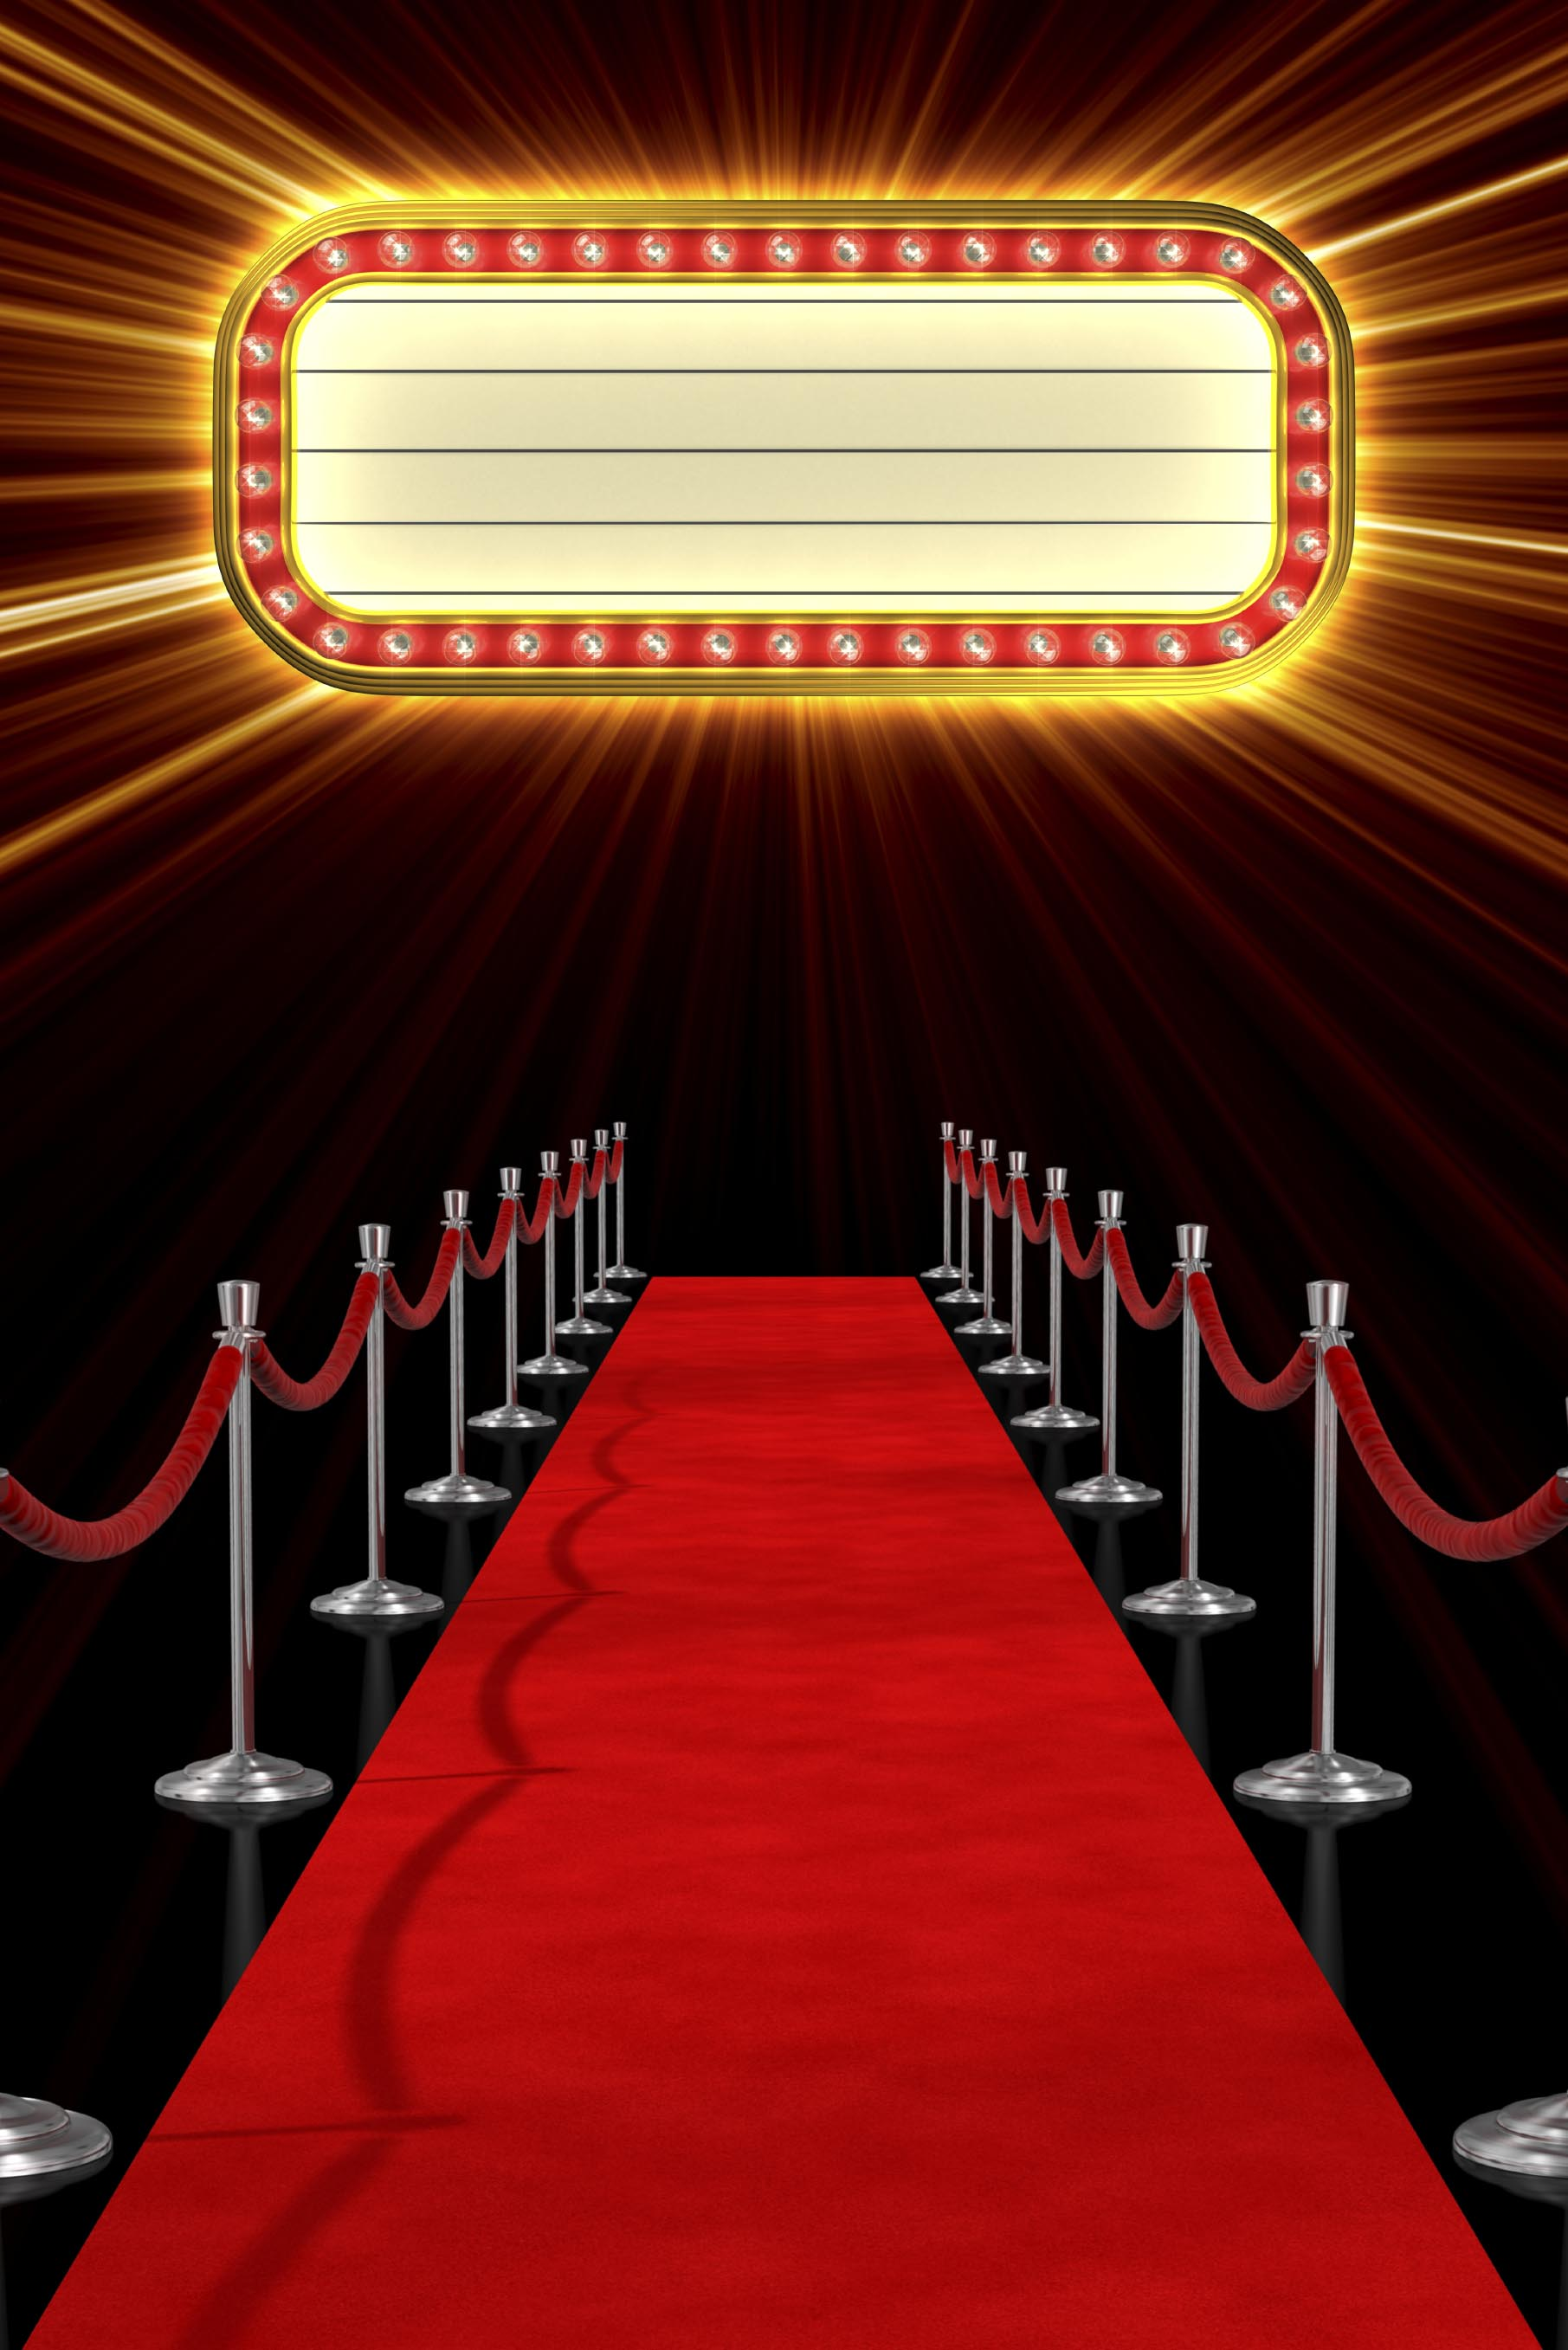 Red Carpet Wallpaper Backdrops Wallpapersafari